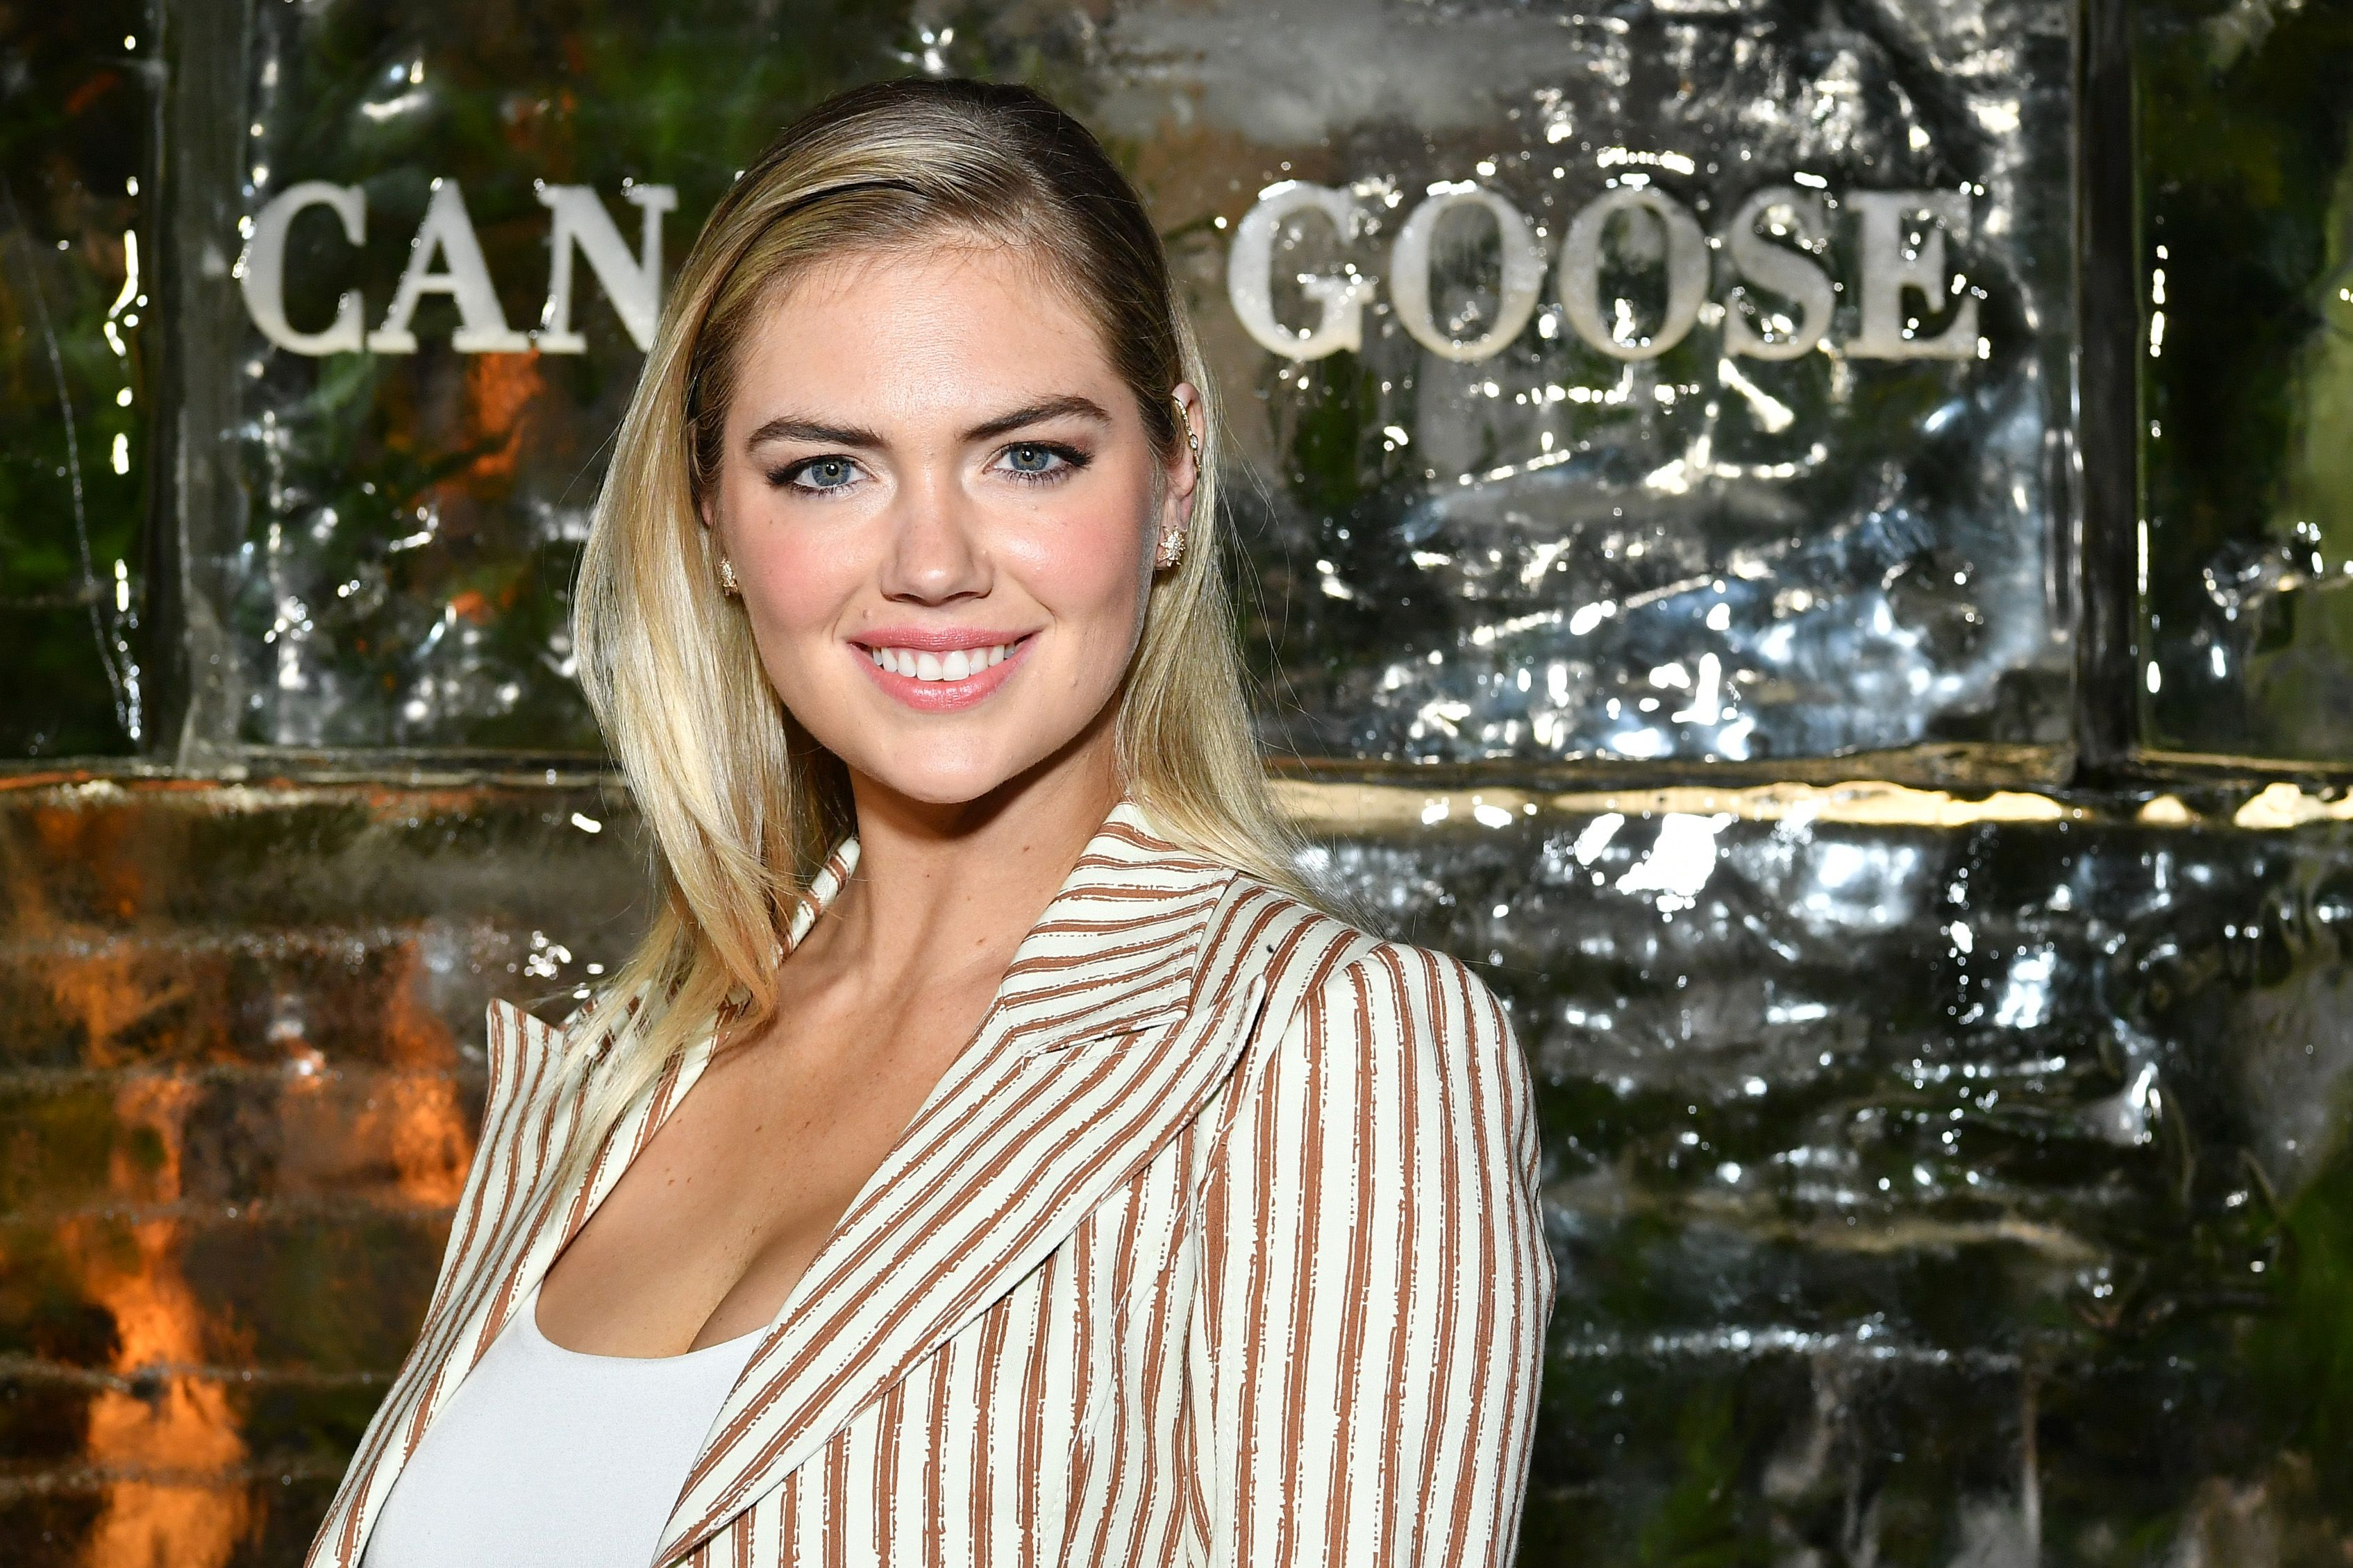 Kate Upton Set A New Pr While Doing Hip Thrusts In Her Gym